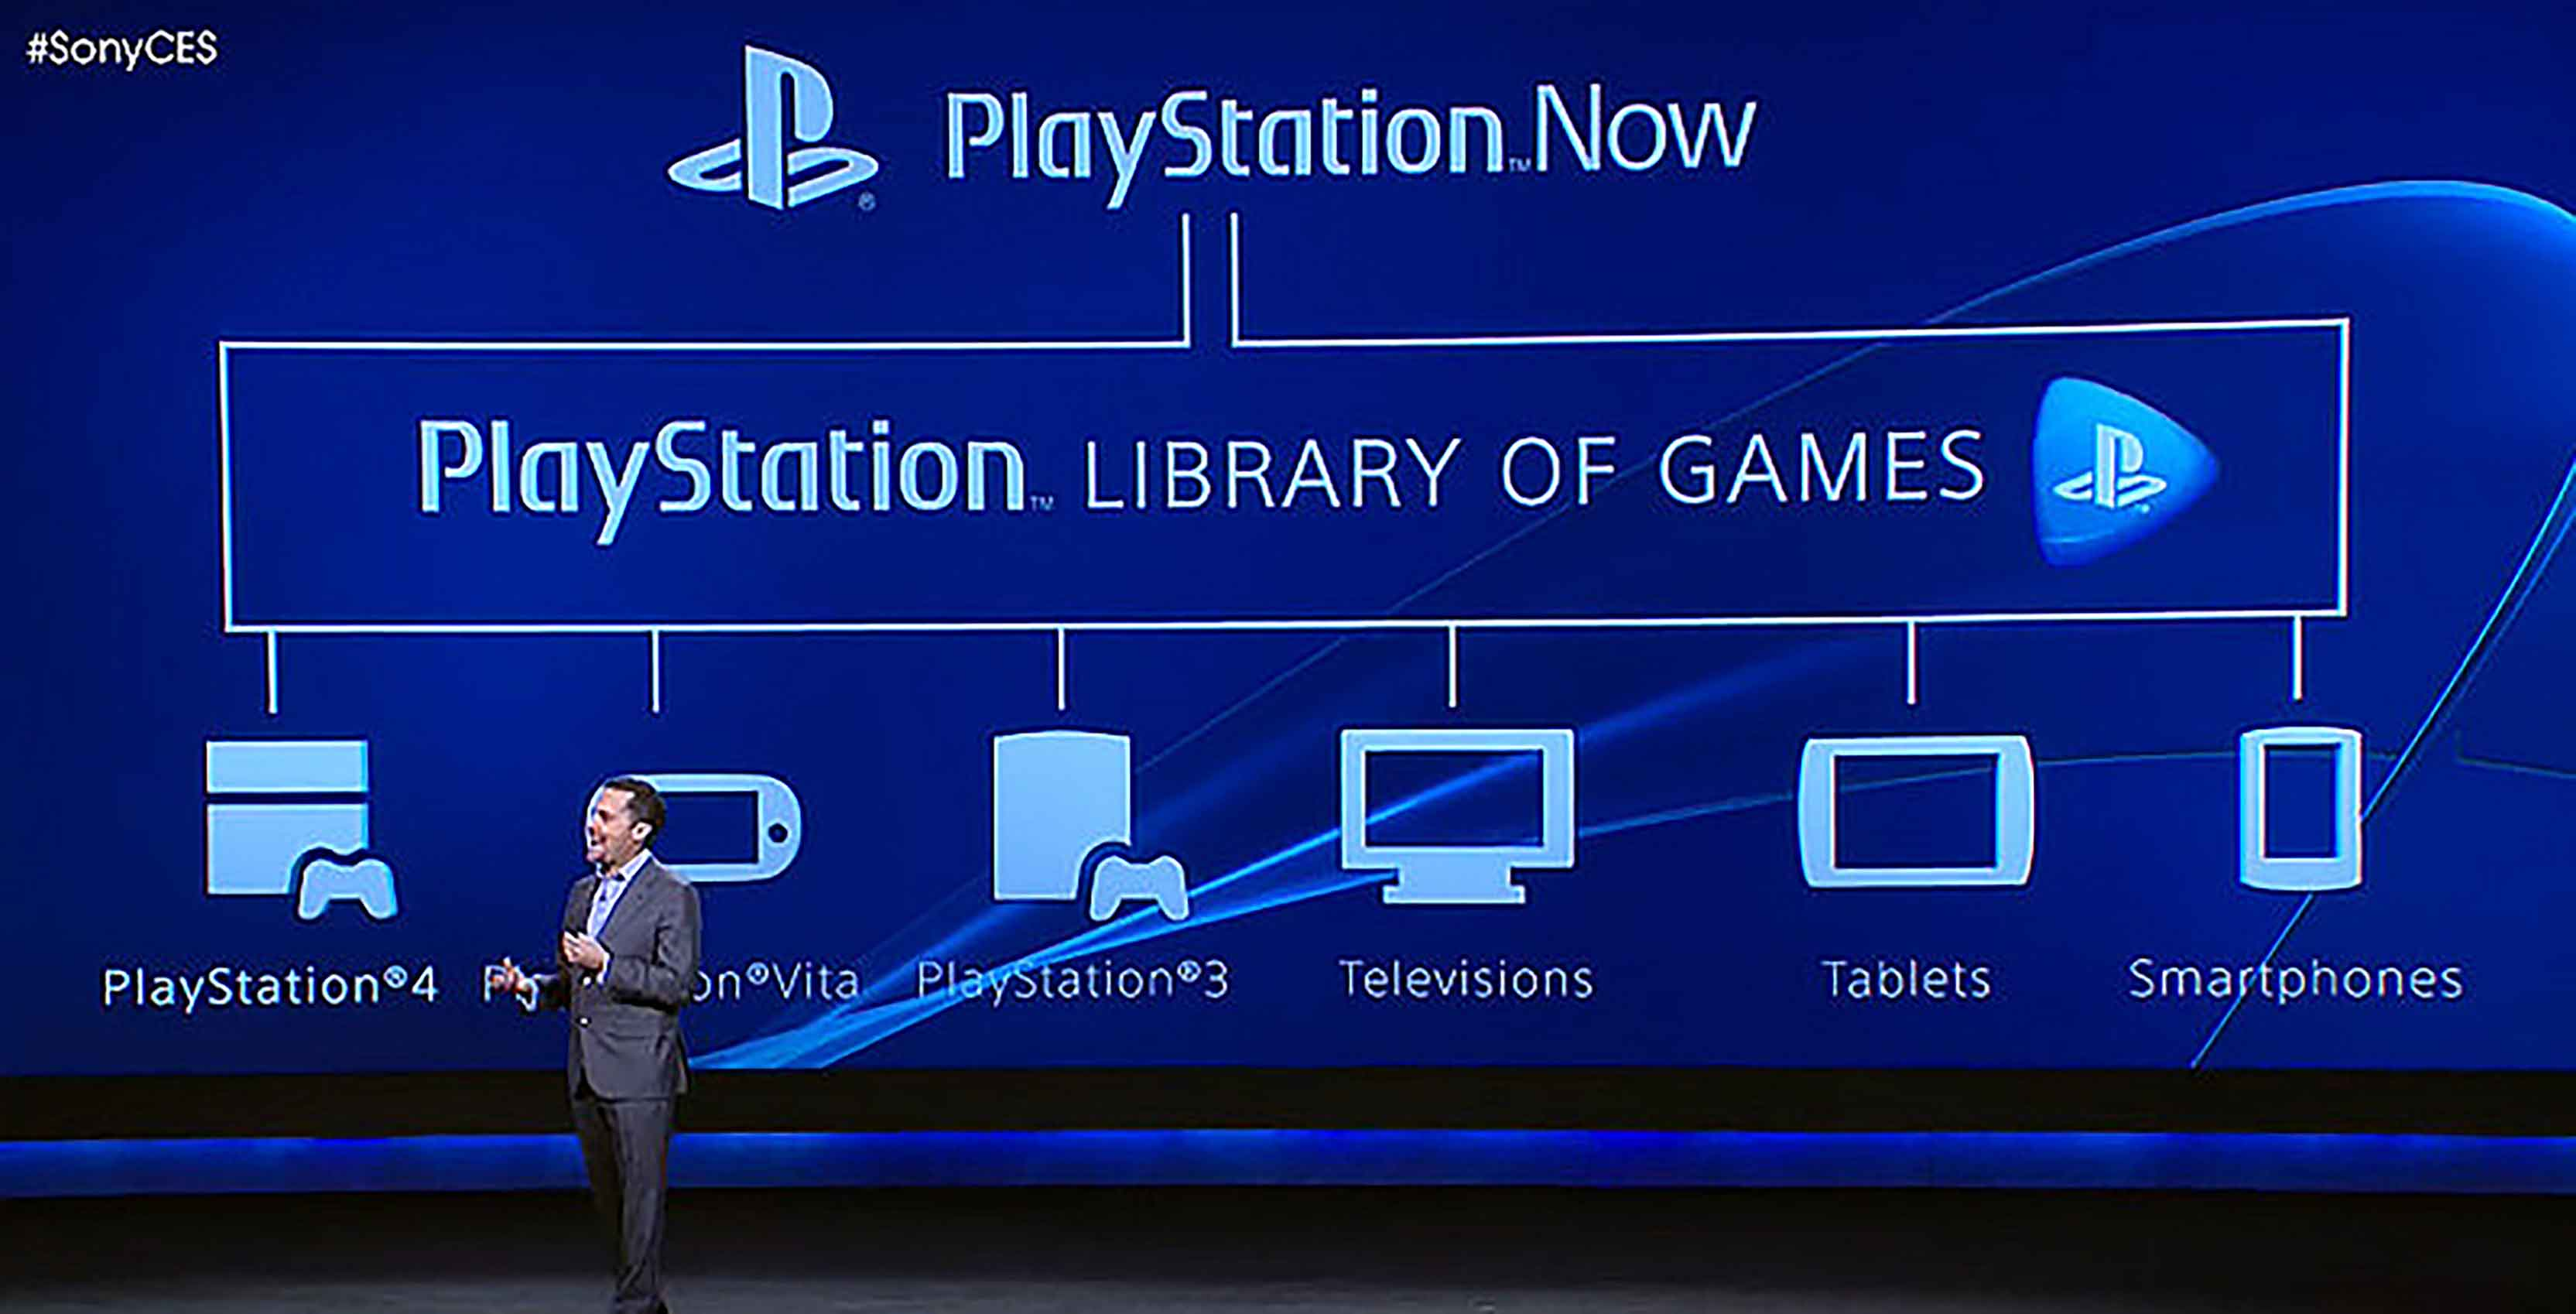 PlayStation Now announcement